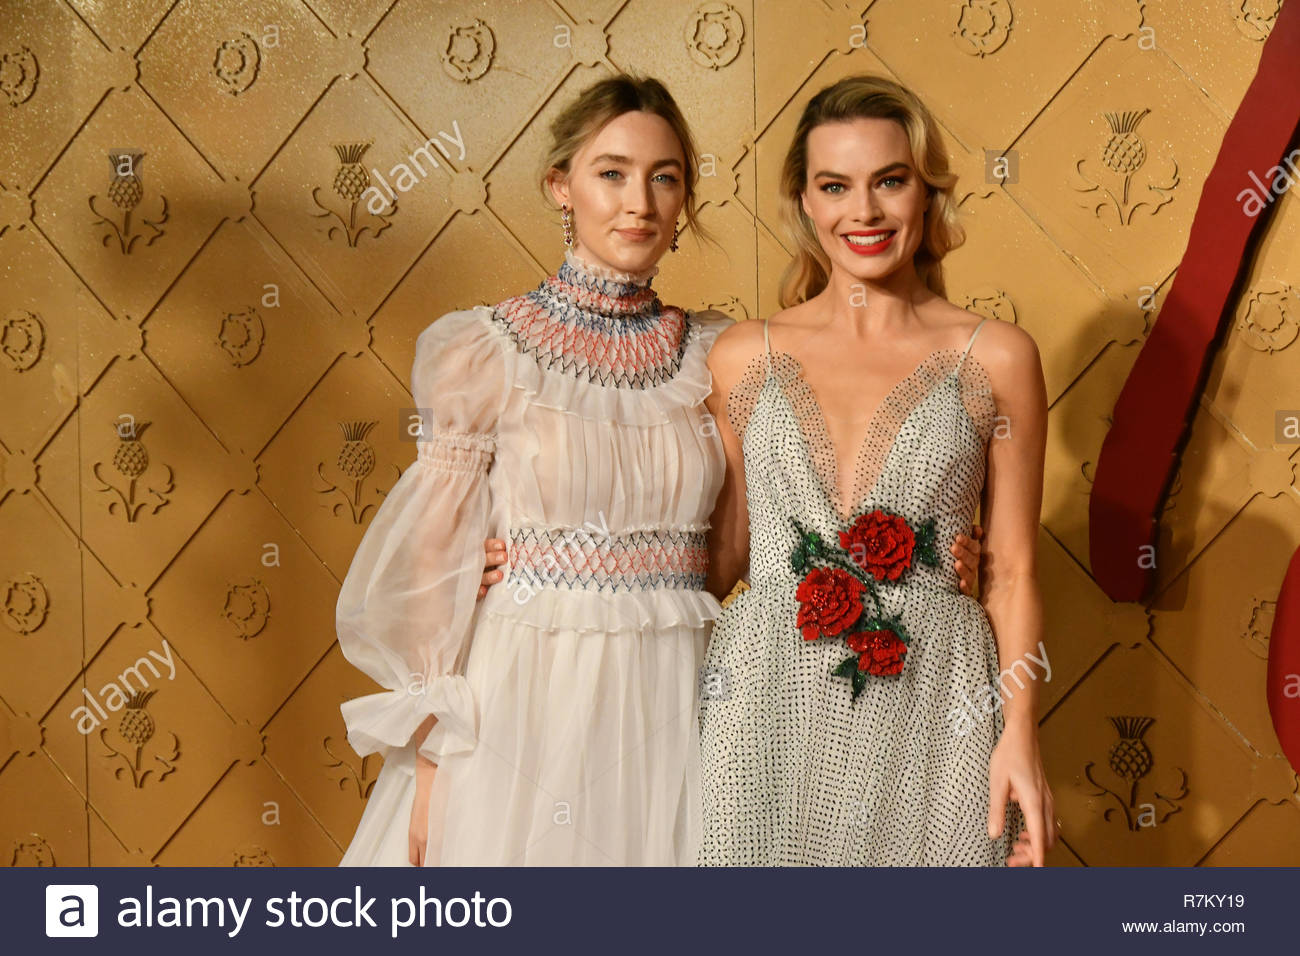 Saoirse Ronan And Margot Robbie High Resolution Stock Photography 1300x956